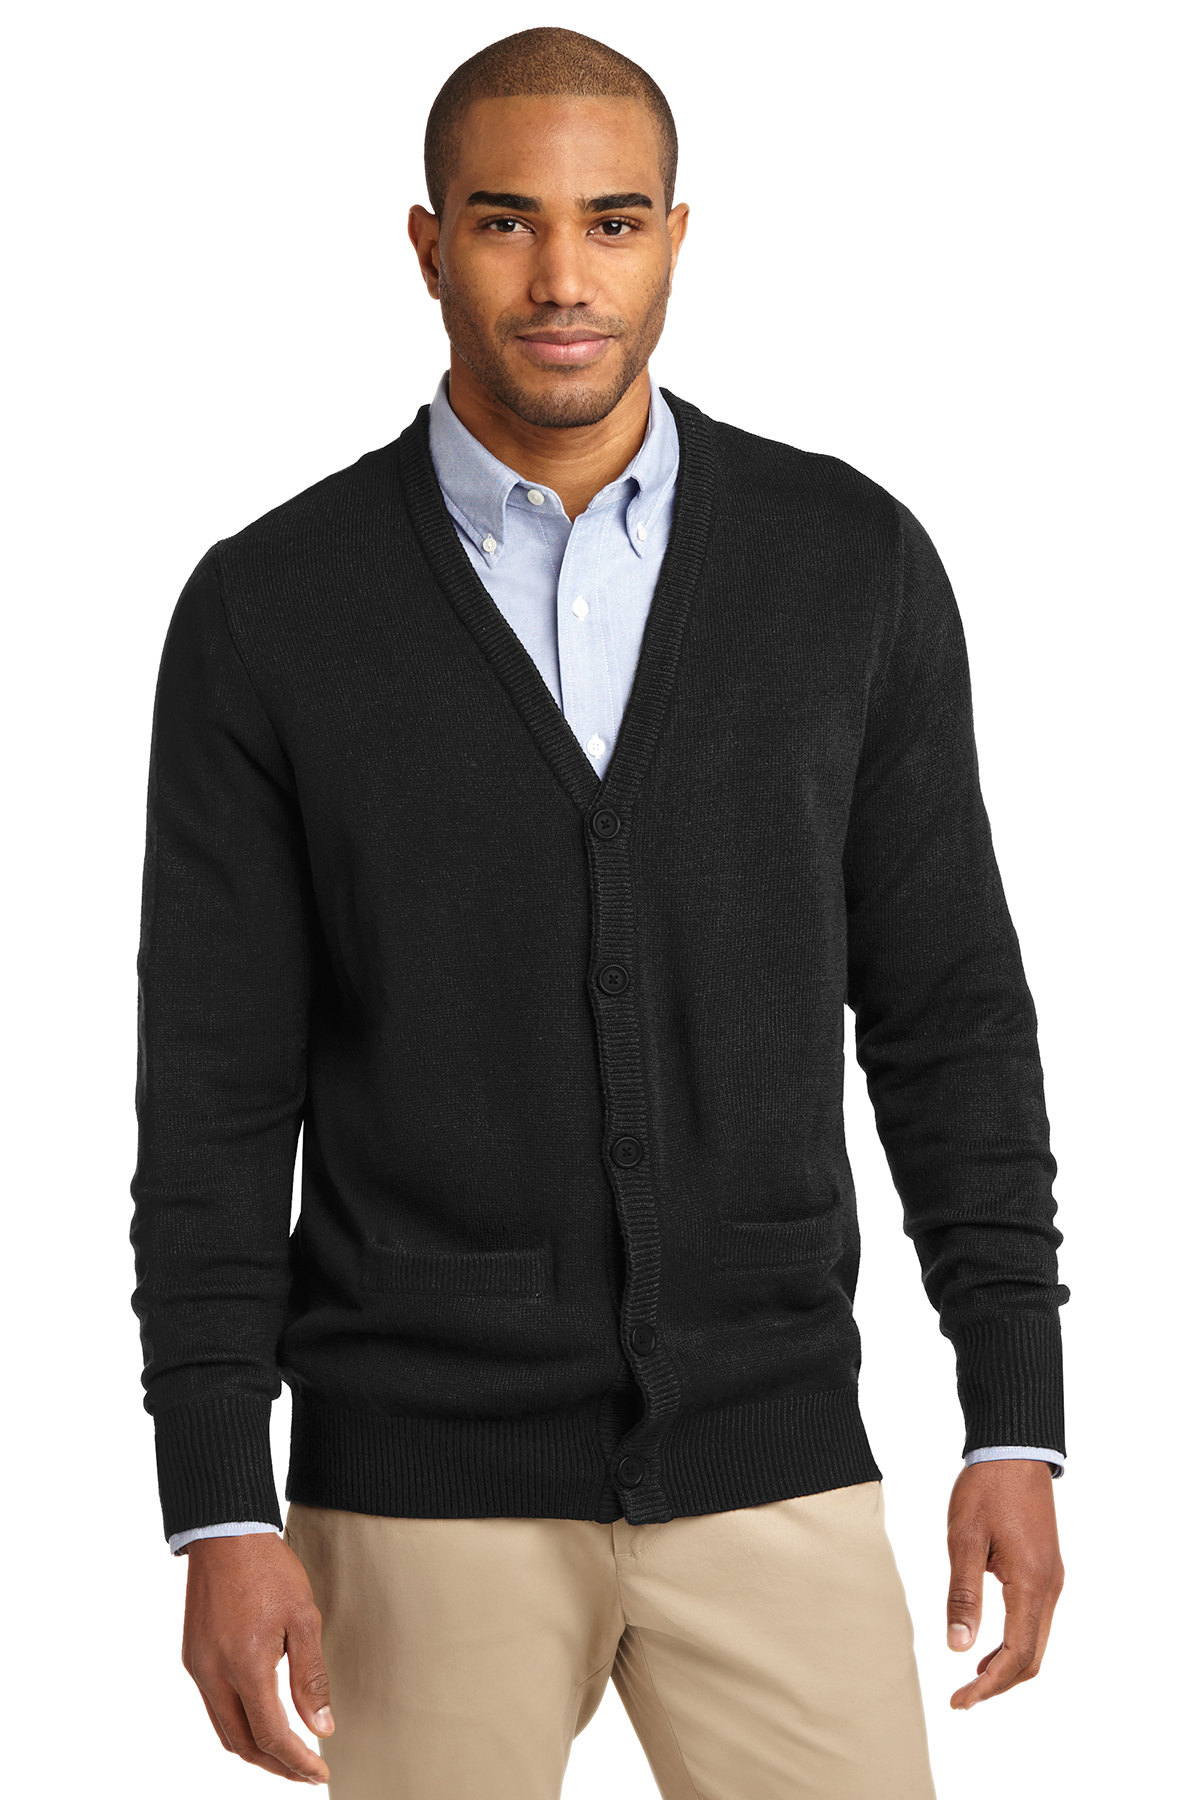 f0d7a1b8f6 Port Authority SW302 Value V-Neck Cardigan with Pockets